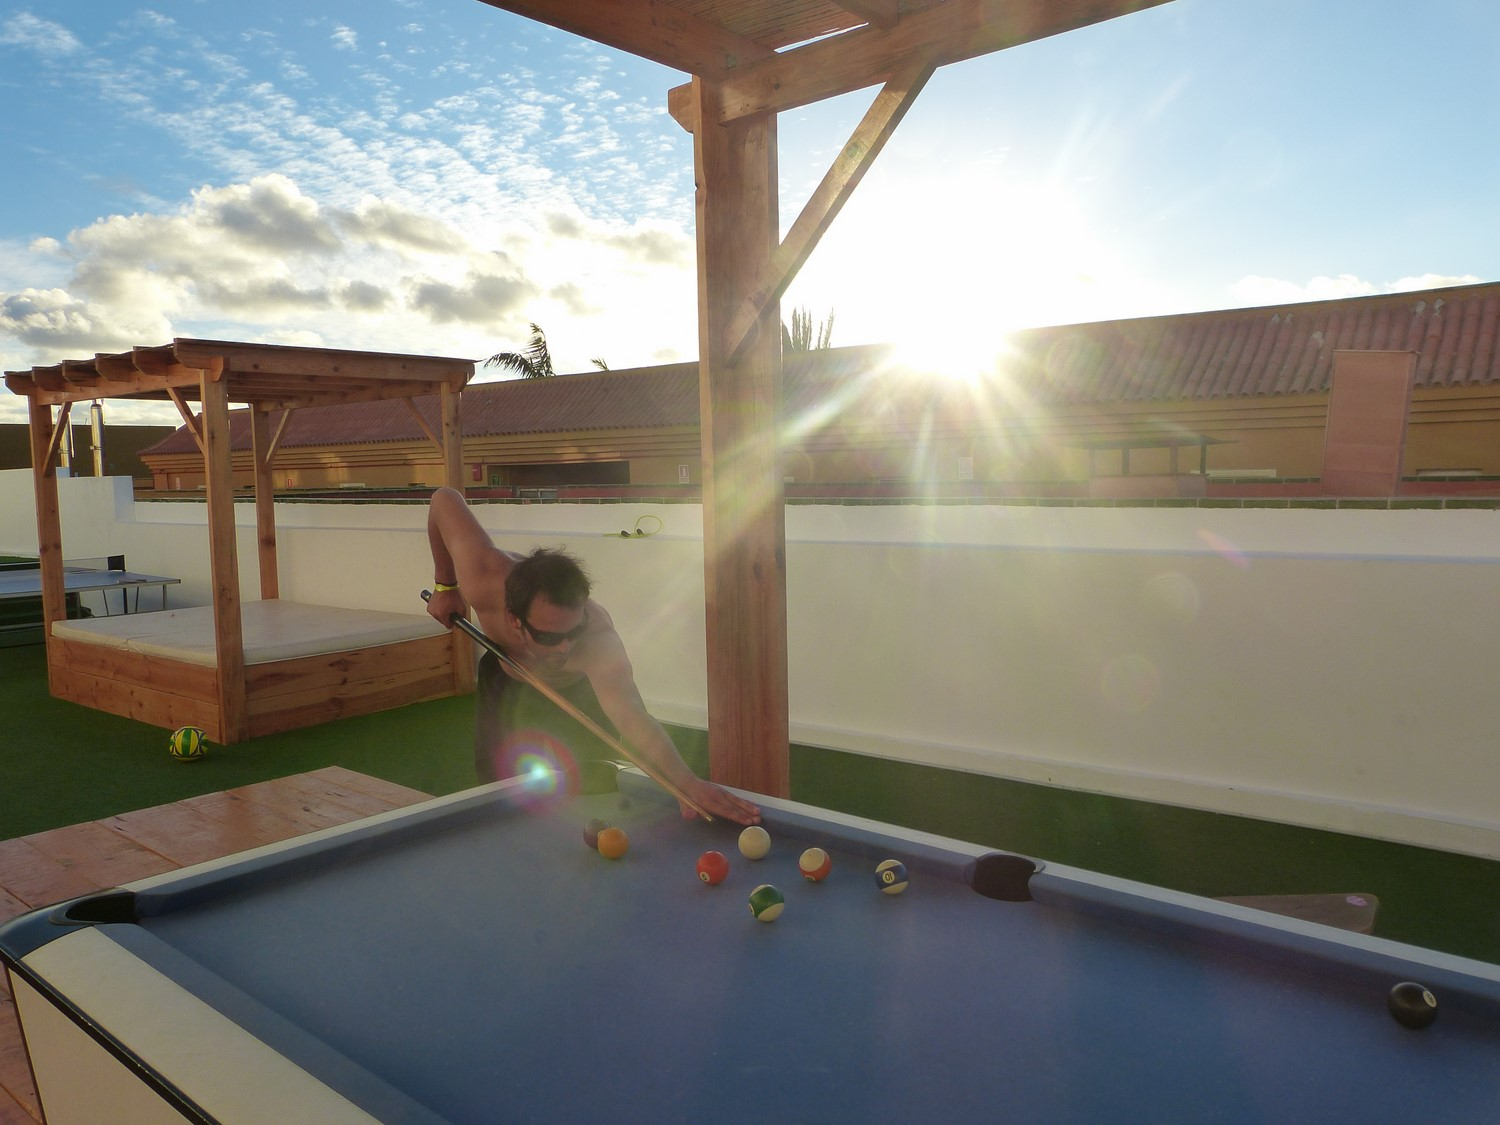 Pool-Billiard-Planet-Surfcamps